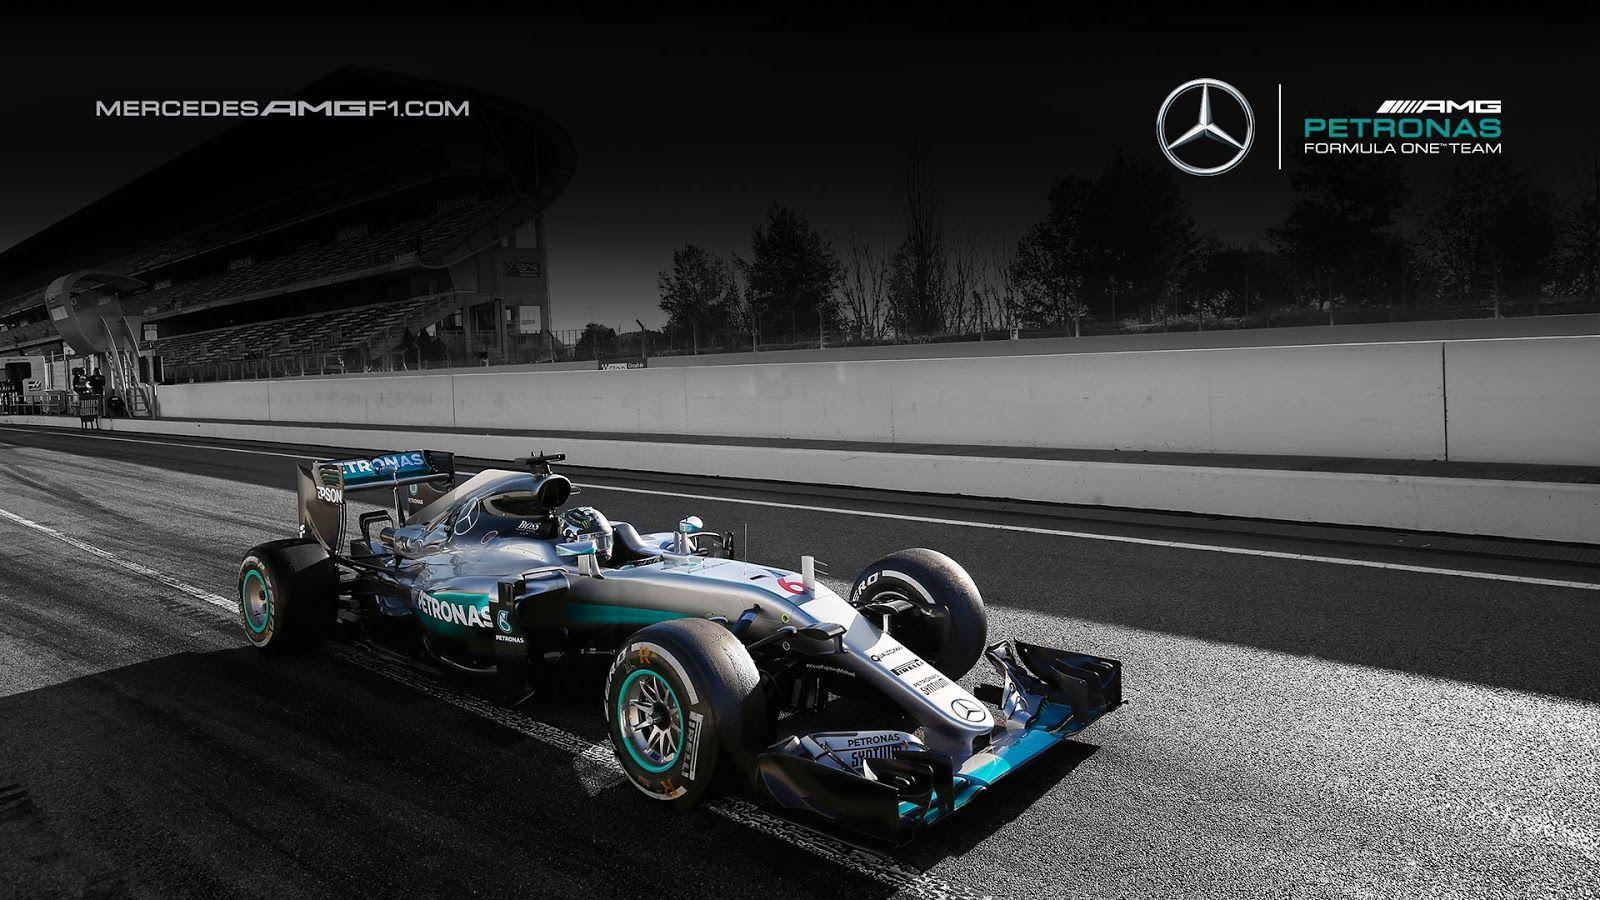 Mercedes AMG Petronas W07 2016 F1 Wallpapers